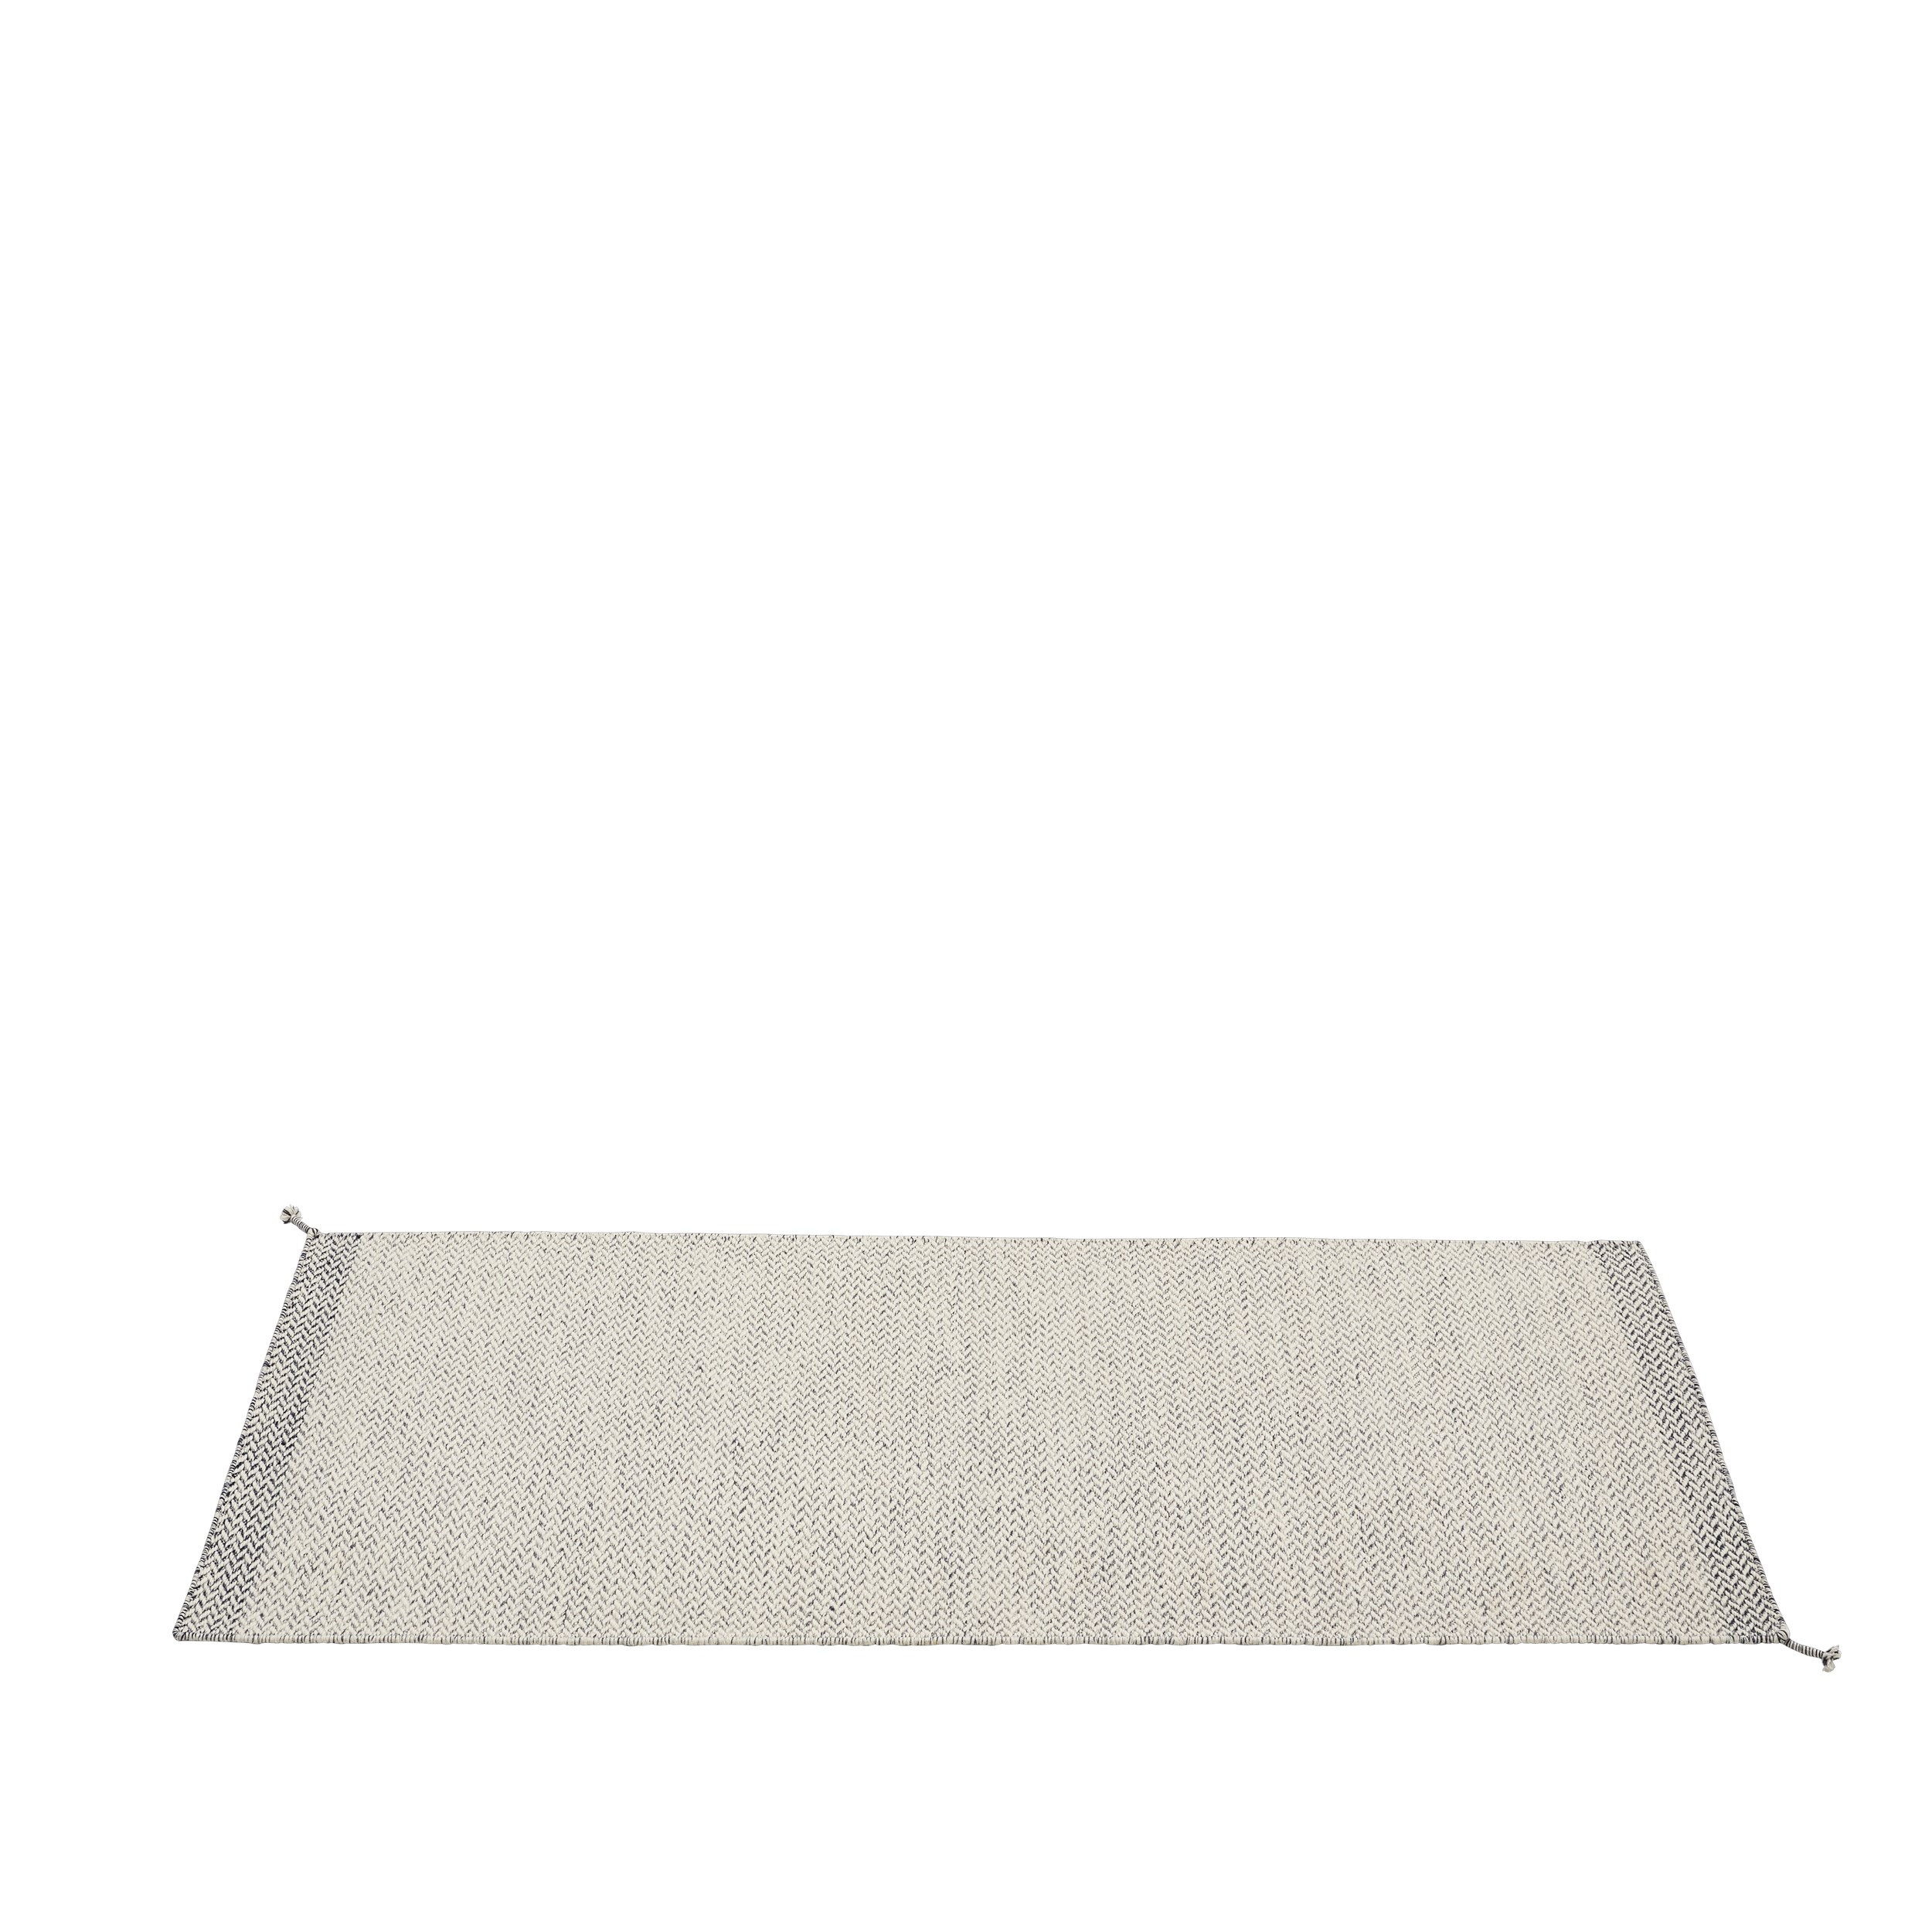 Ply rug 80 x 200 off-white